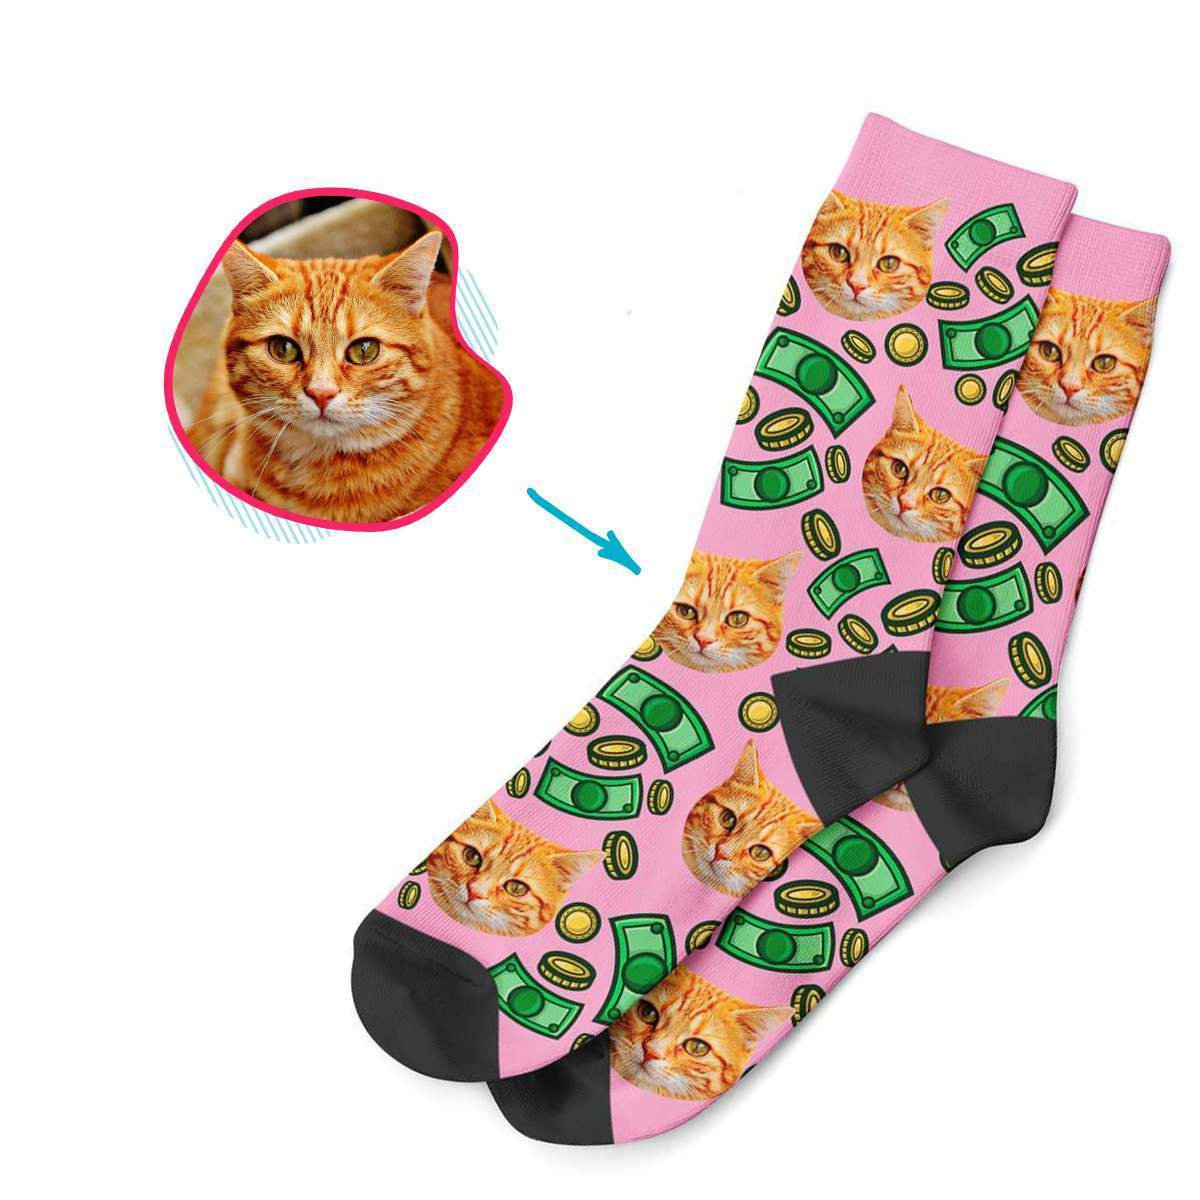 pink Money socks personalized with photo of face printed on them